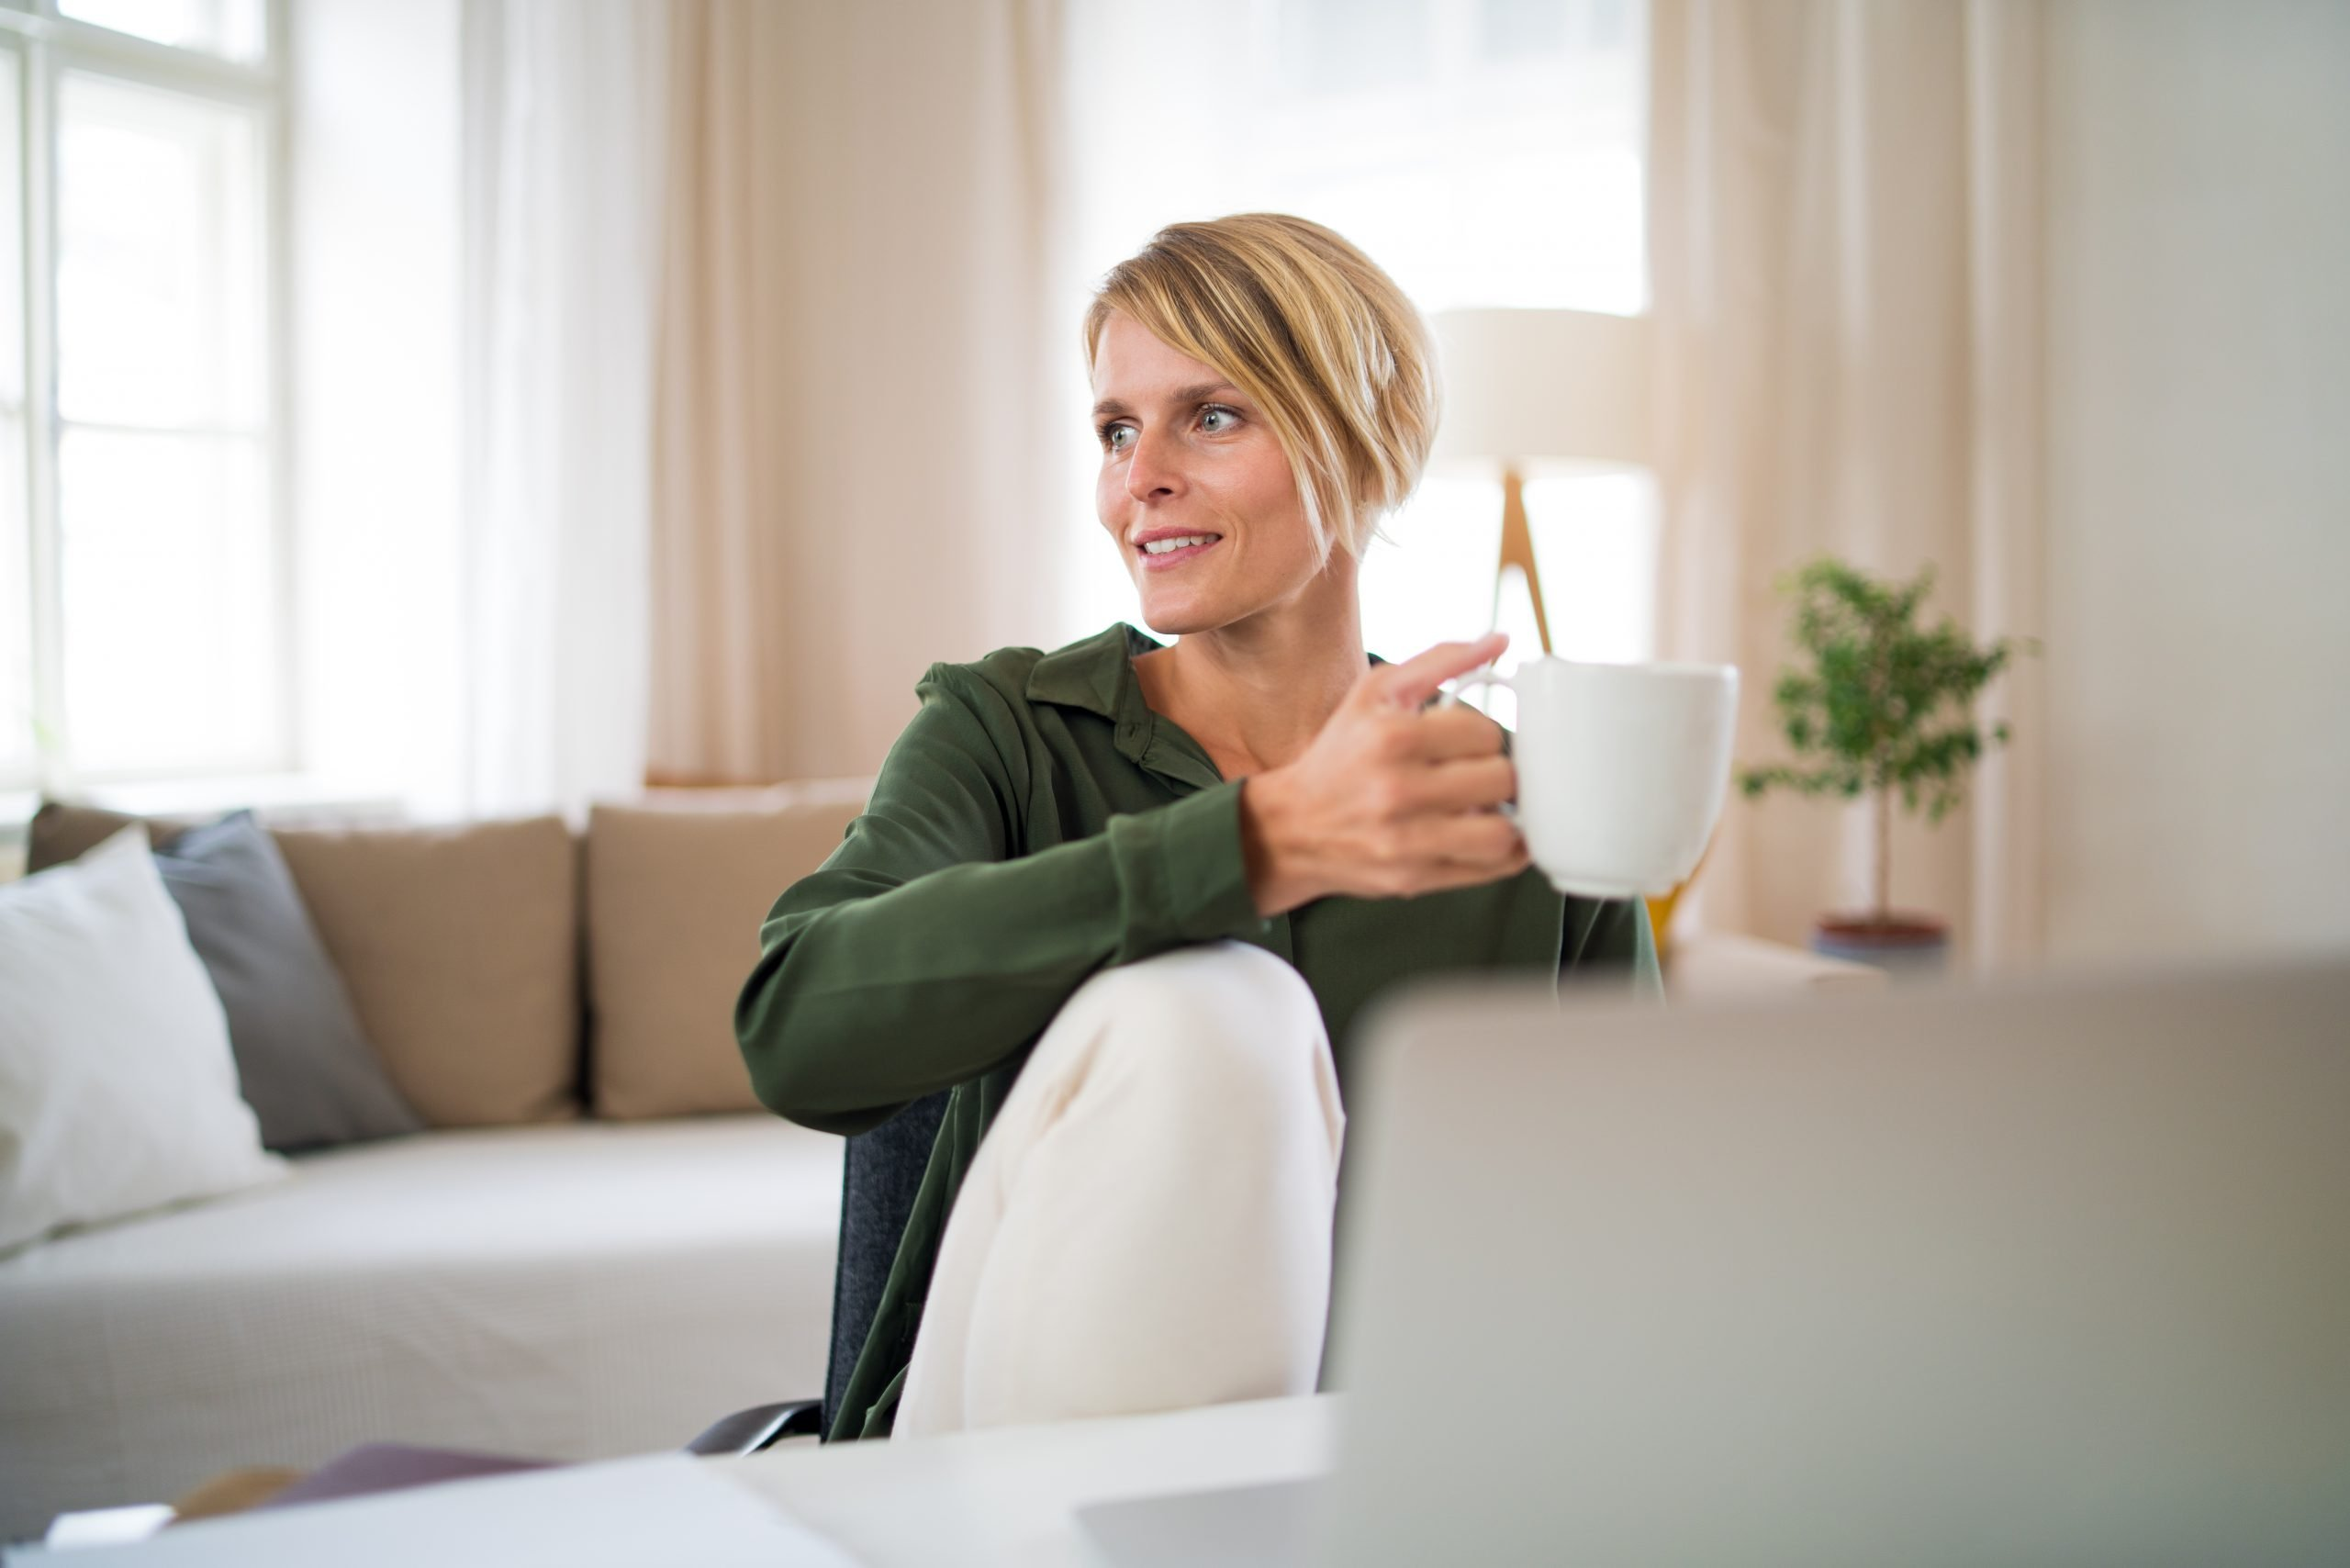 Portrait of business woman indoors in office sitting at desk, holding cup of tea.